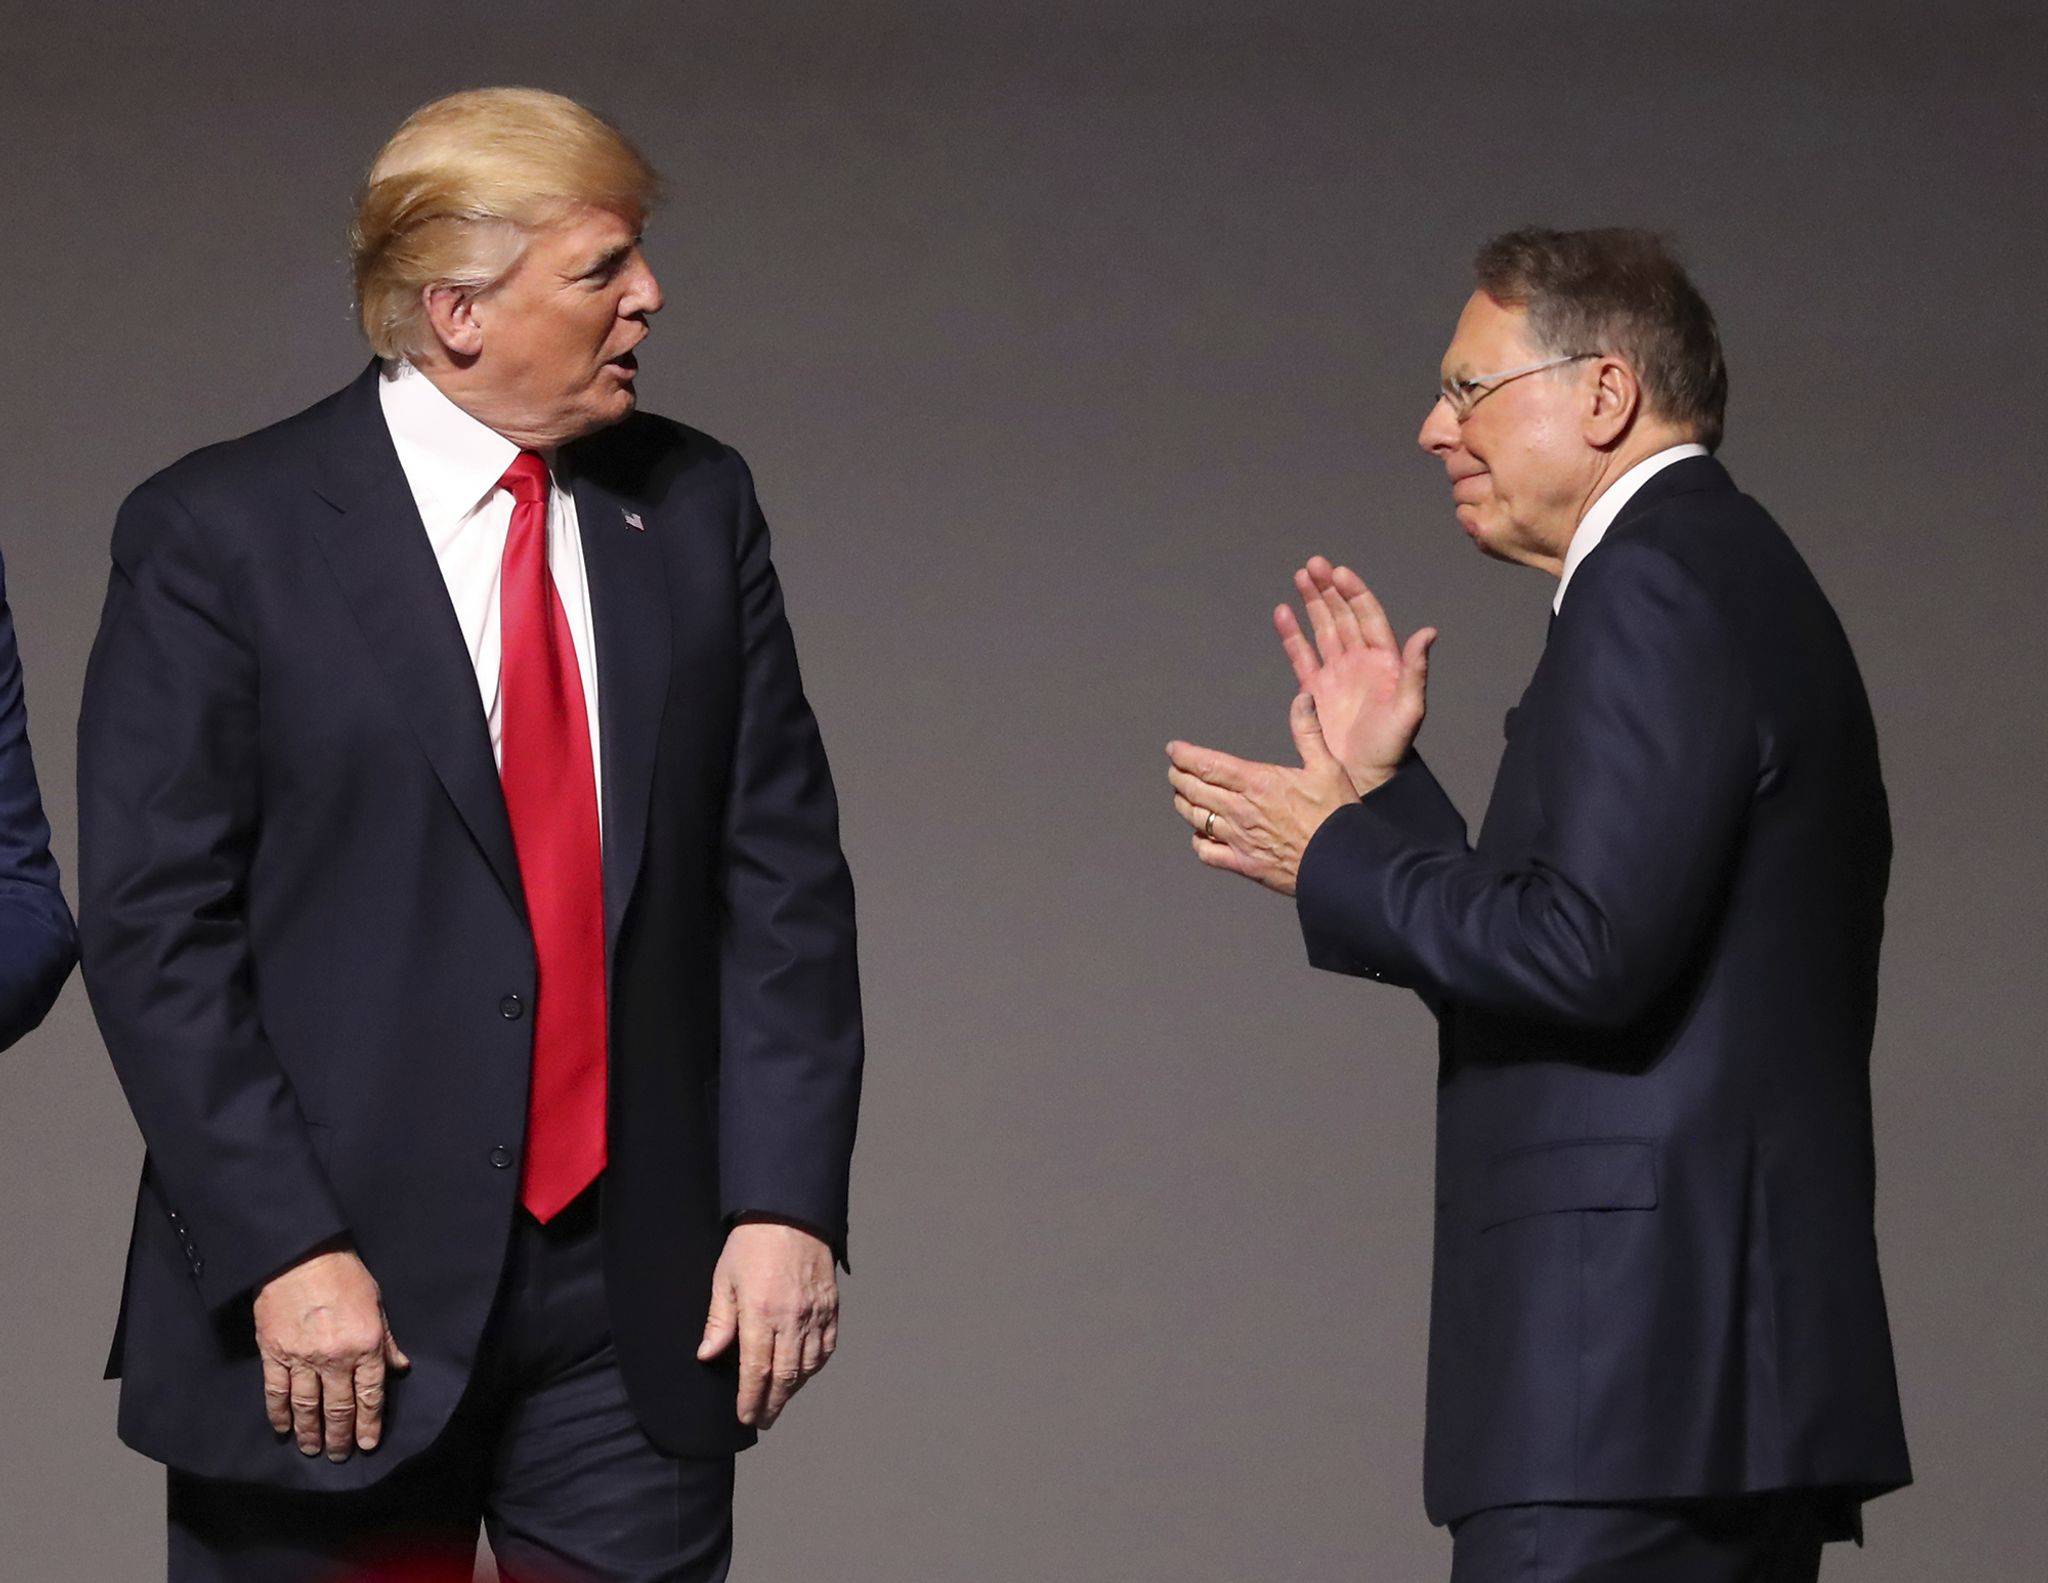 NRA members say Trump needs more support from Republicans in Congress